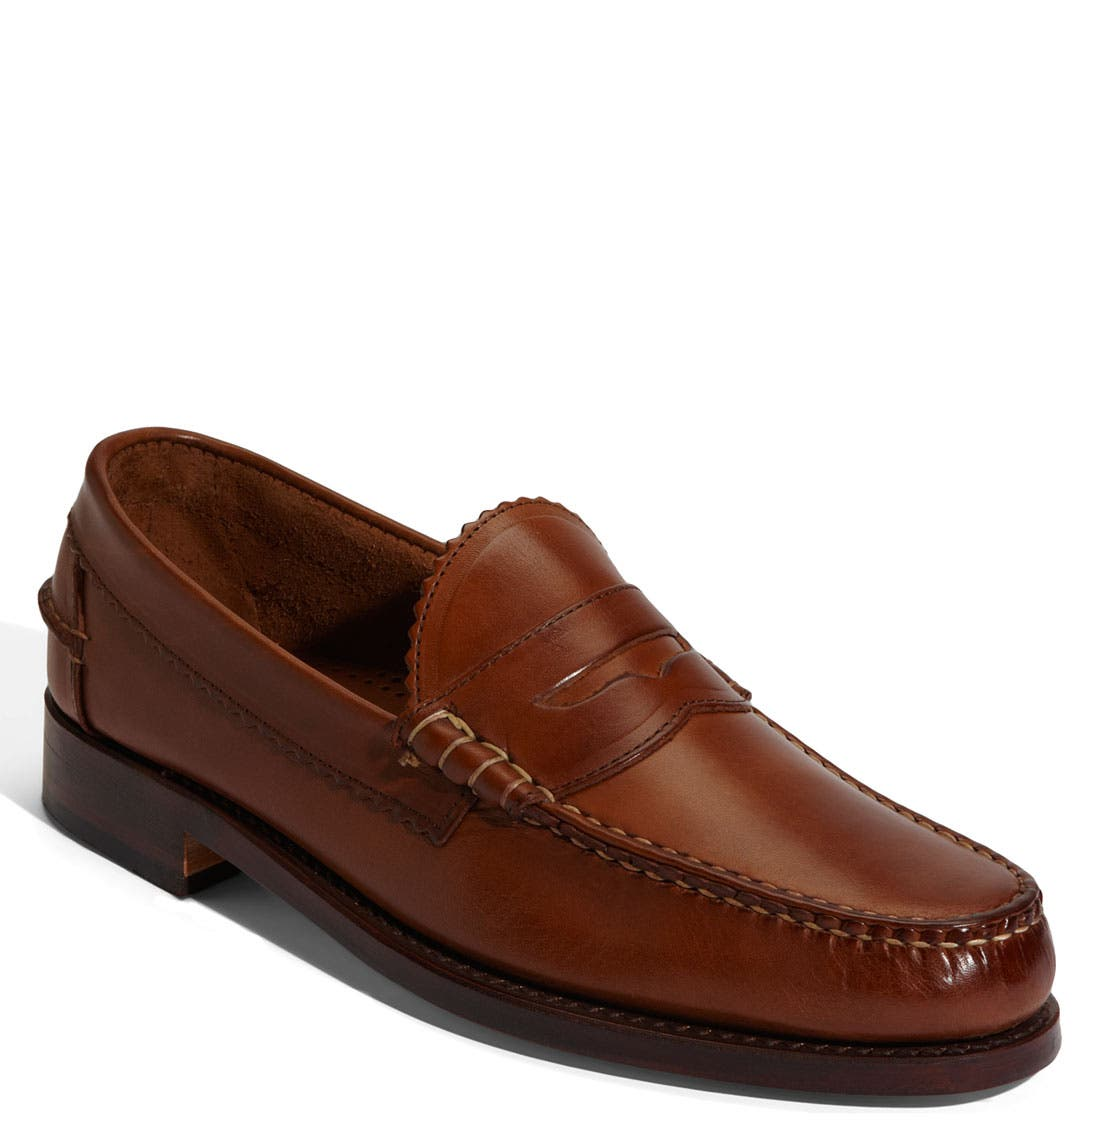 Main Image - Allen Edmonds 'Kenwood' Penny Loafer (Men)